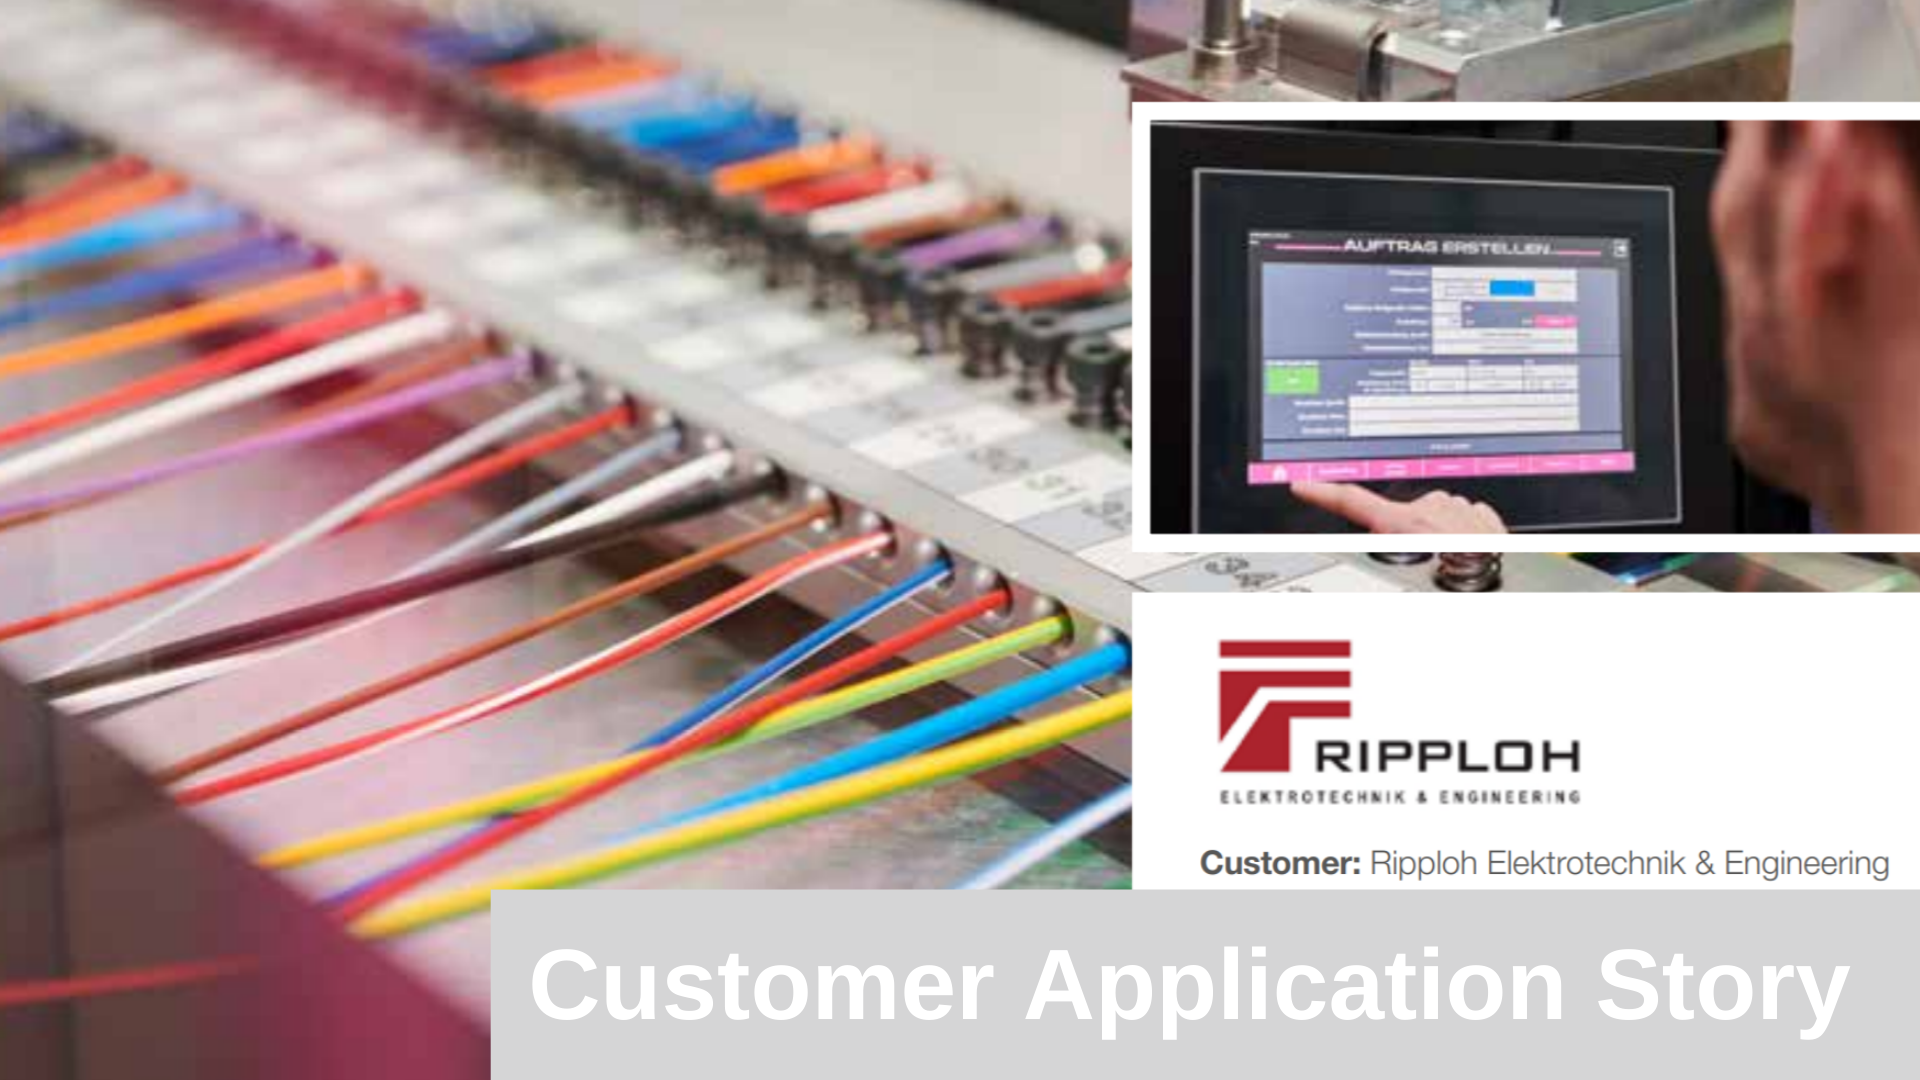 Ripploh case study with EPLAN and Rittal